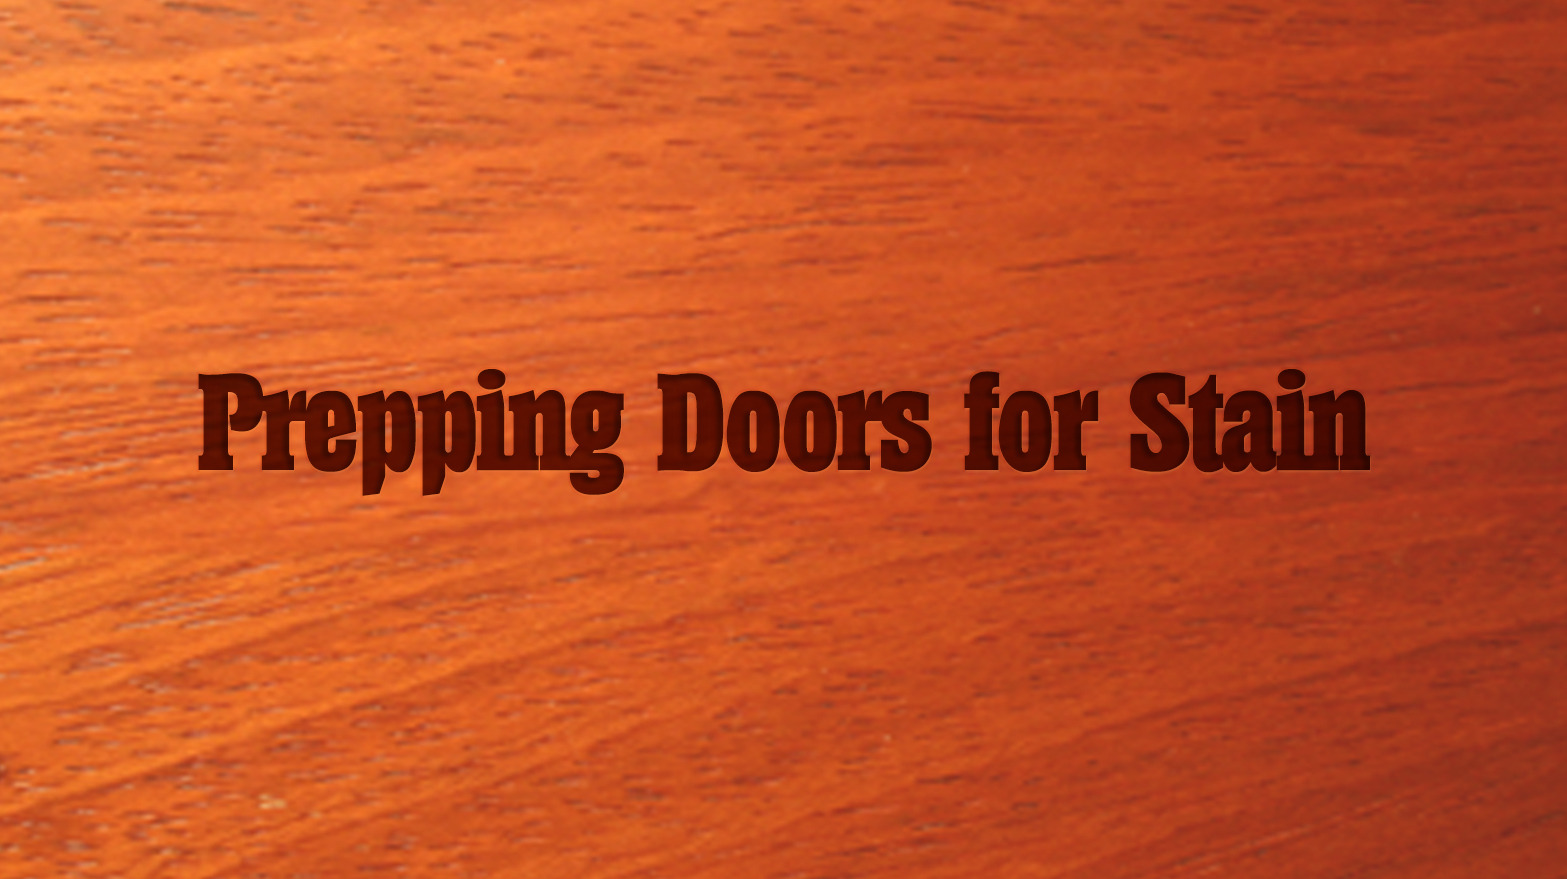 5 Day Intensive: Prepping Doors for Stain